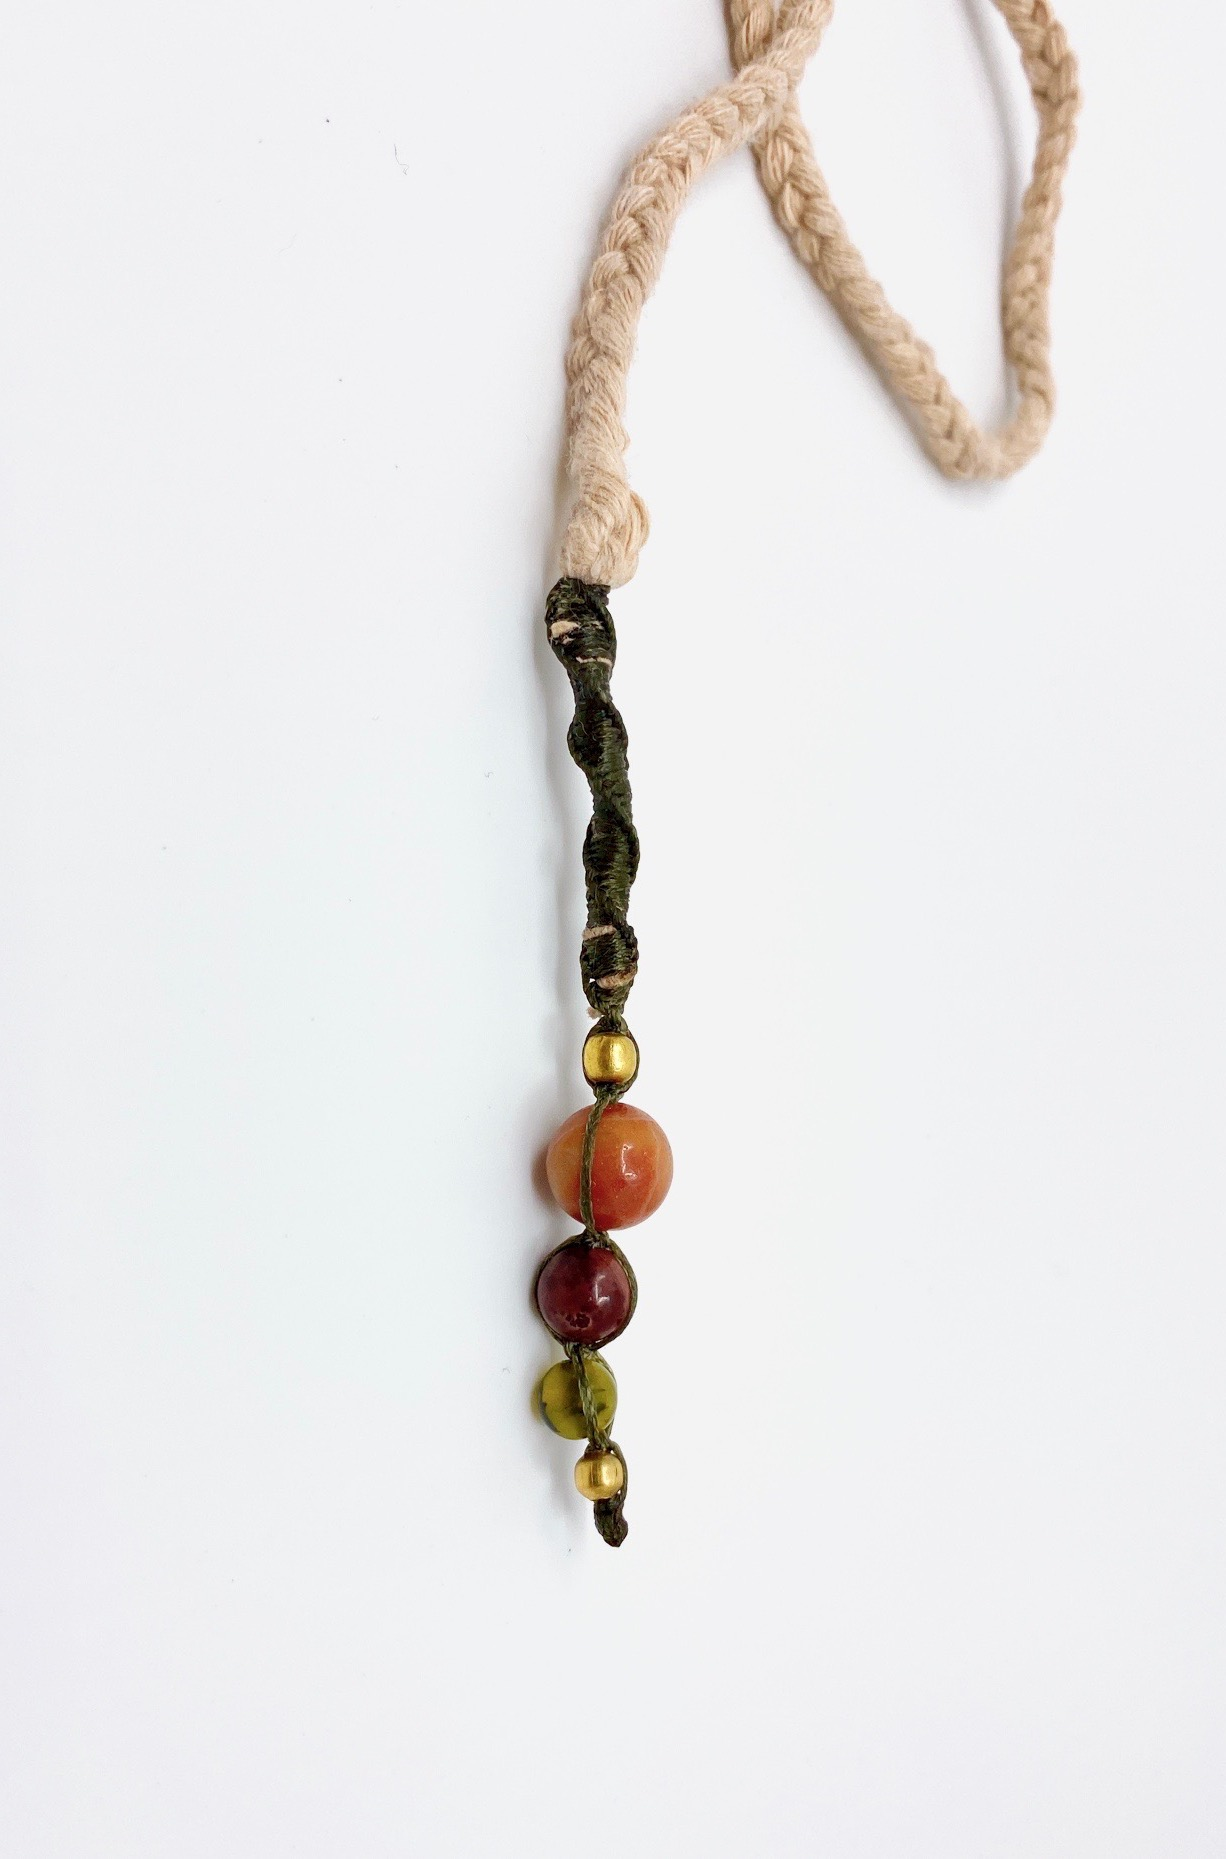 Hippie style long macrame necklace - CALA GONONE